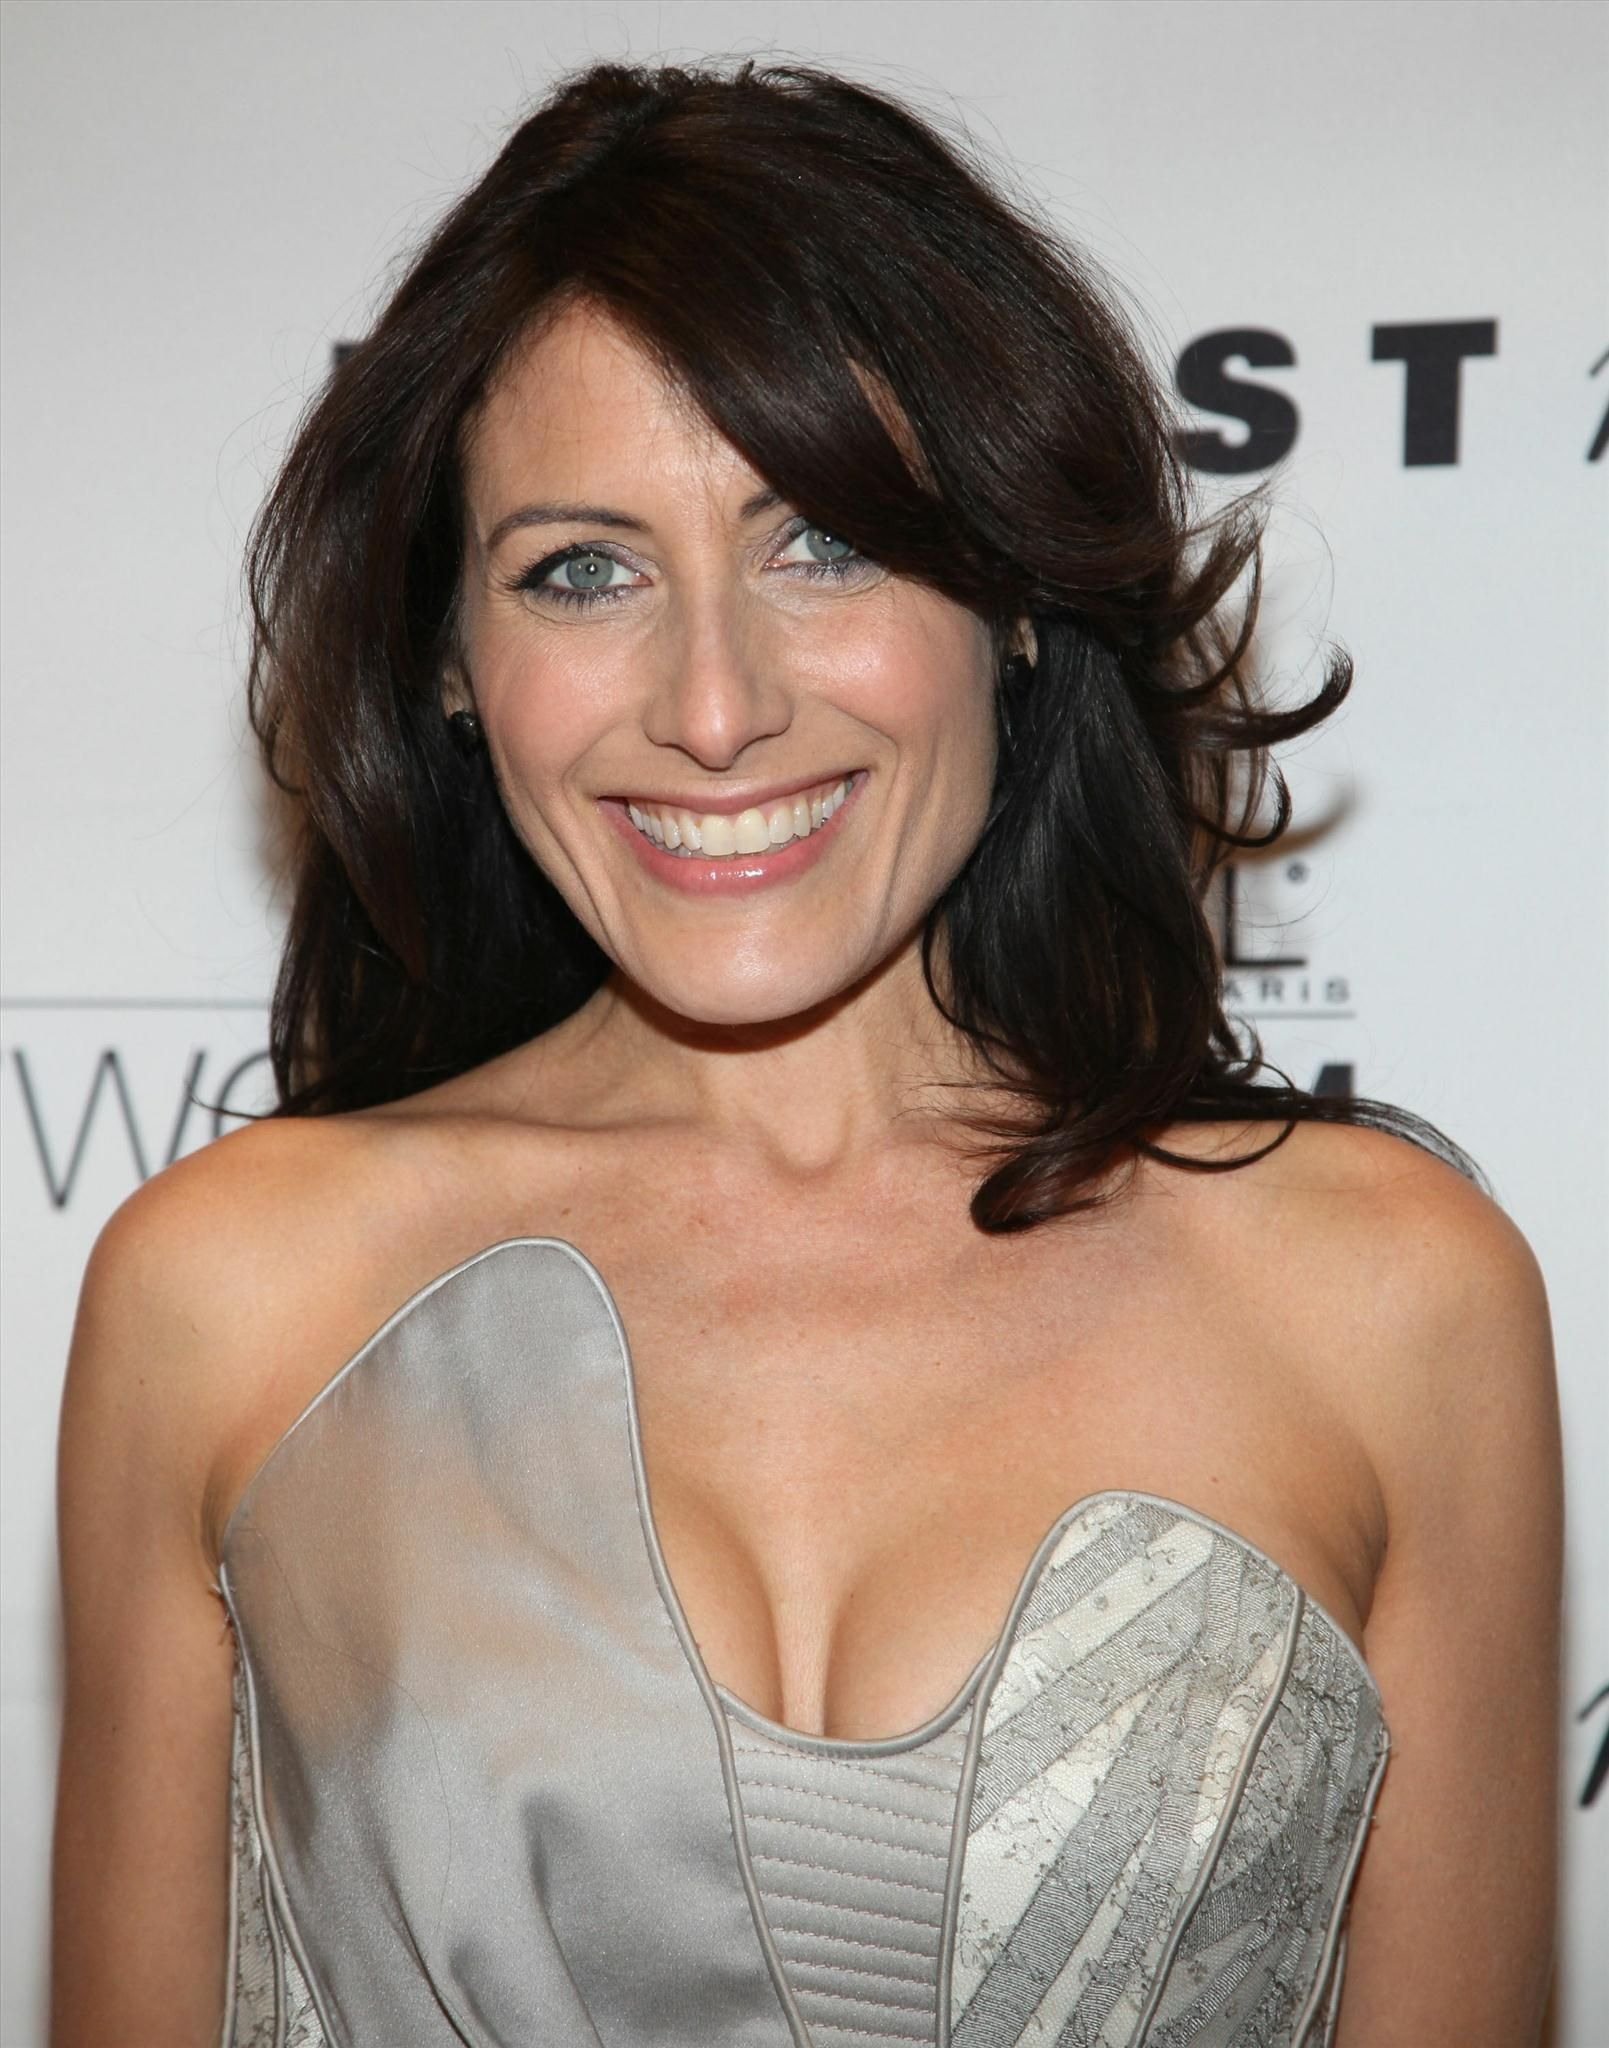 lisa edelstein as good as it getslisa edelstein instagram, lisa edelstein 2017, lisa edelstein and robert russell, lisa edelstein house, lisa edelstein paul adelstein, lisa edelstein фото, lisa edelstein er, lisa edelstein imdb, lisa edelstein yoga, lisa edelstein family, lisa edelstein as good as it gets, lisa edelstein seinfeld, lisa edelstein astrotheme, lisa edelstein hugh laurie relationship, lisa edelstein facebook, lisa edelstein good wife, lisa edelstein filmography, lisa edelstein relationships, lisa edelstein biography, lisa edelstein height